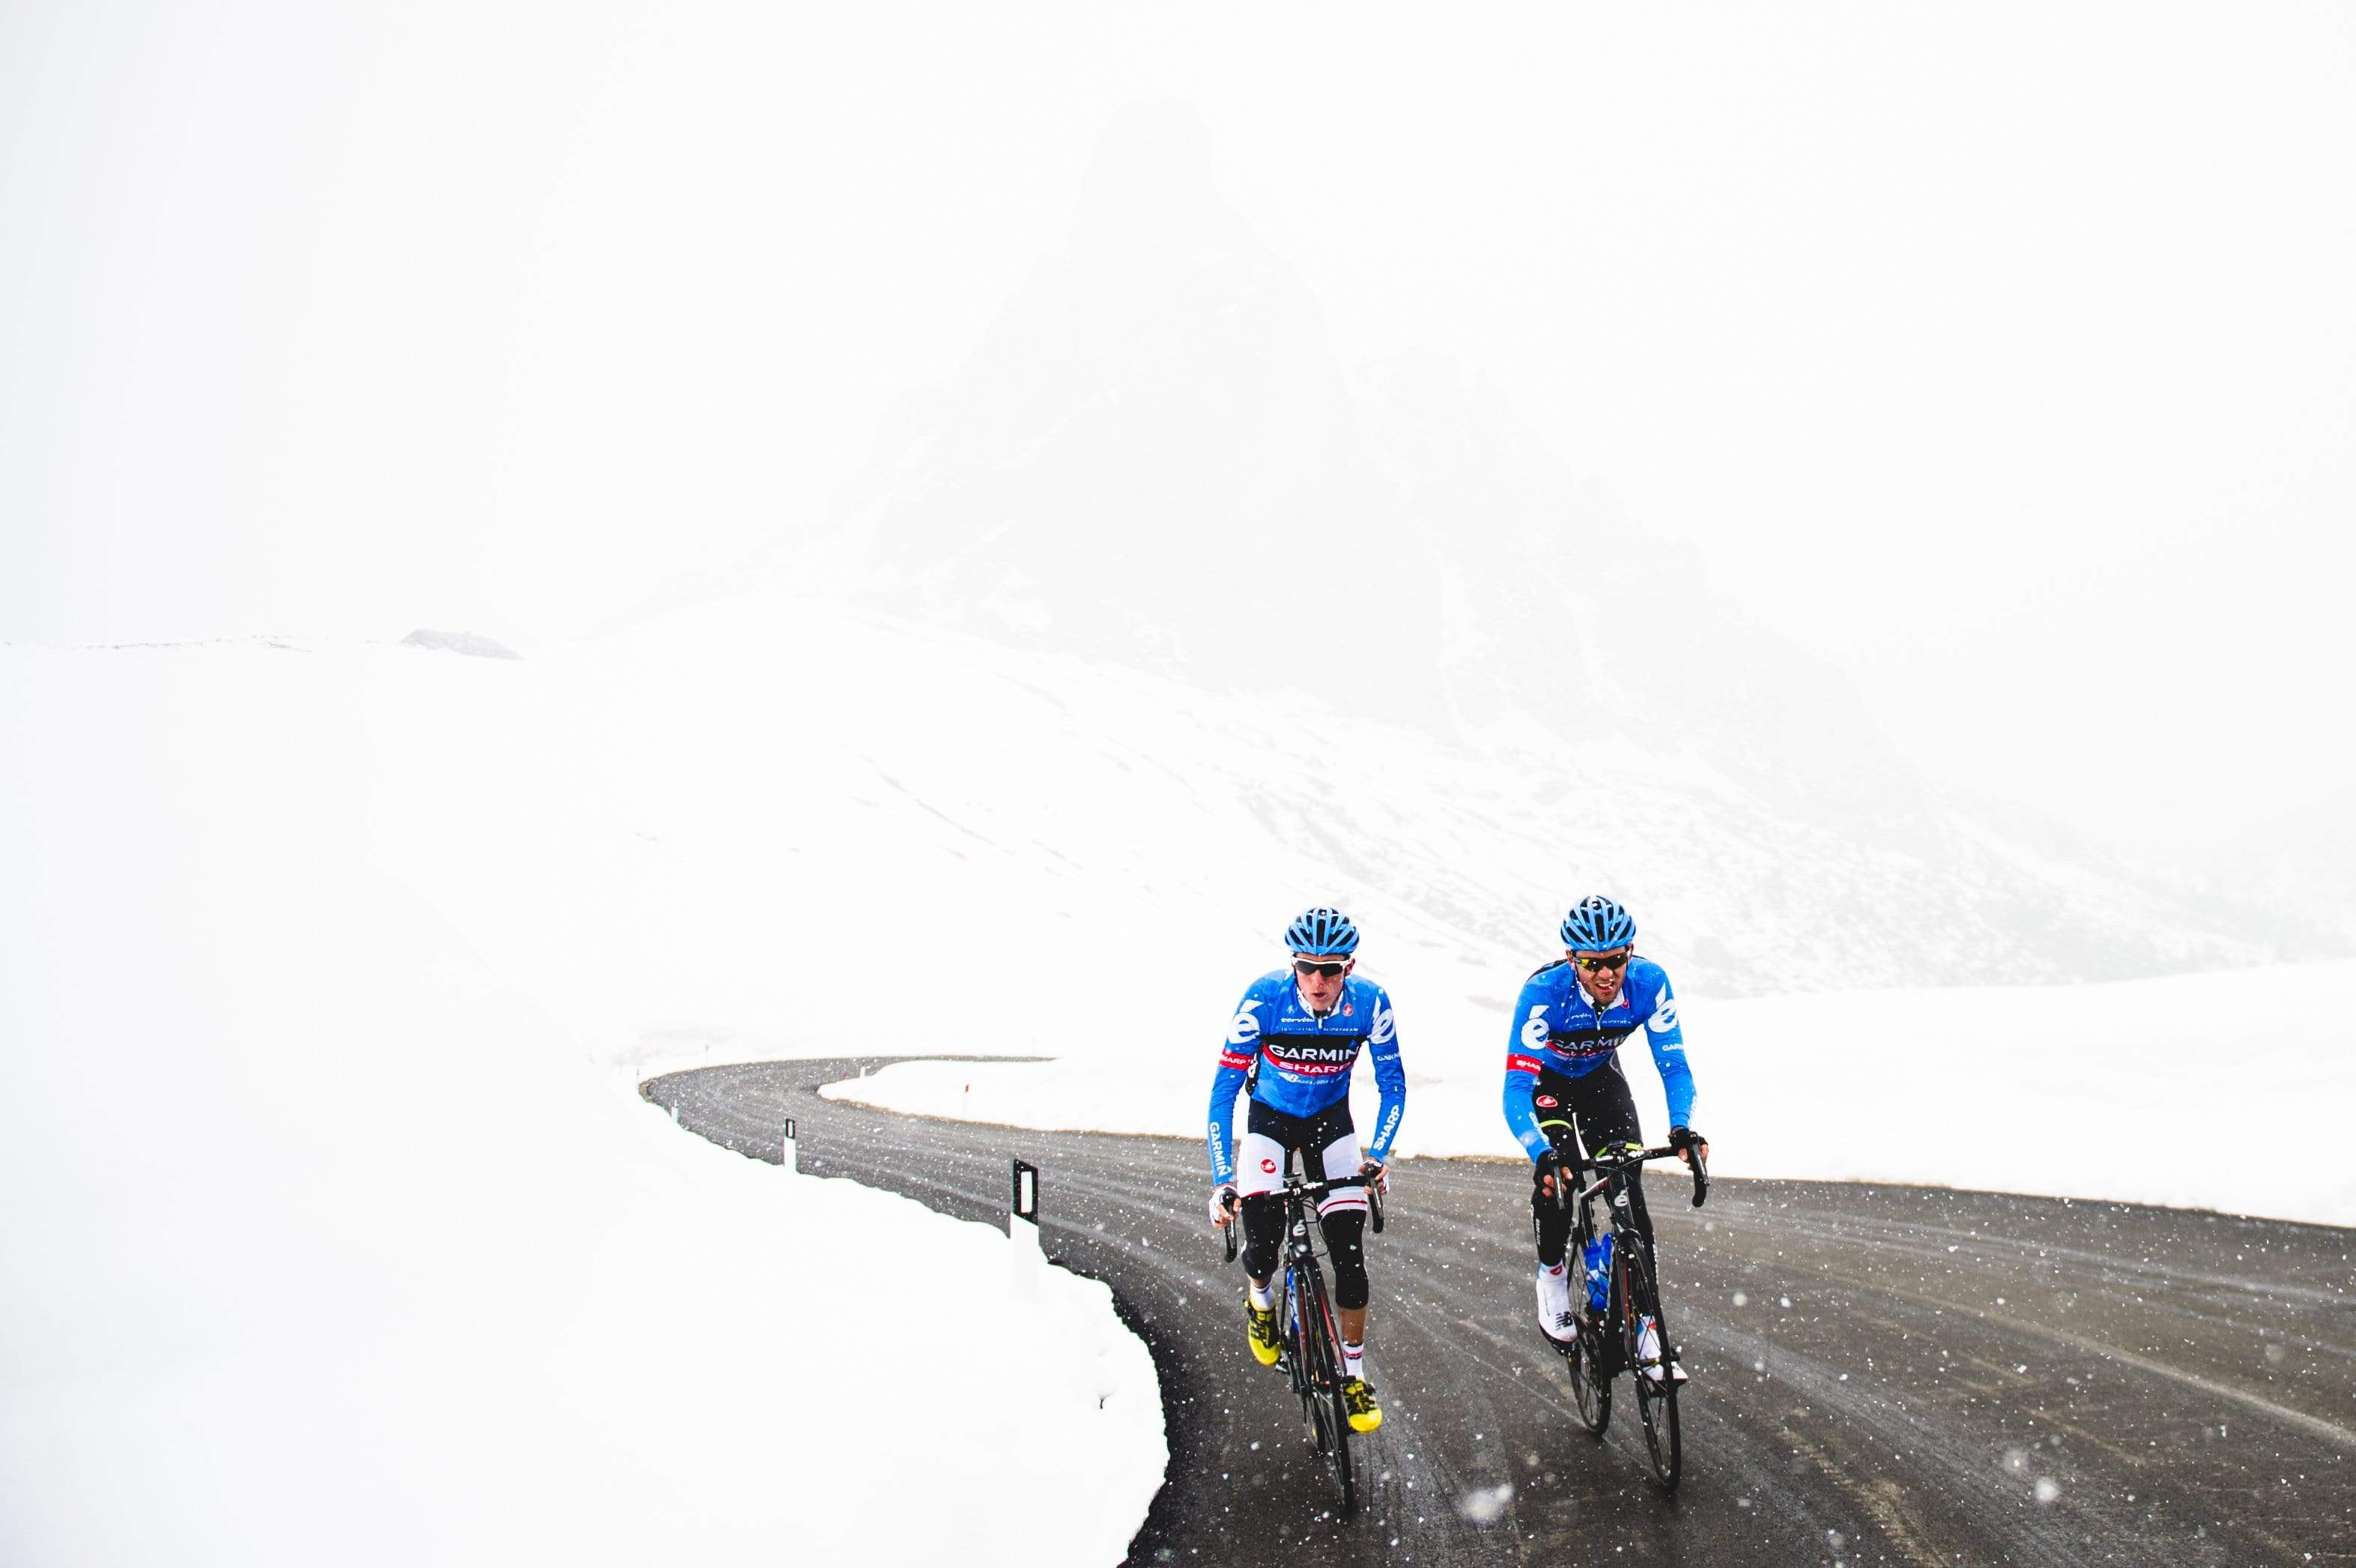 Inigo's Blog: | Riding and Racing at Altitude